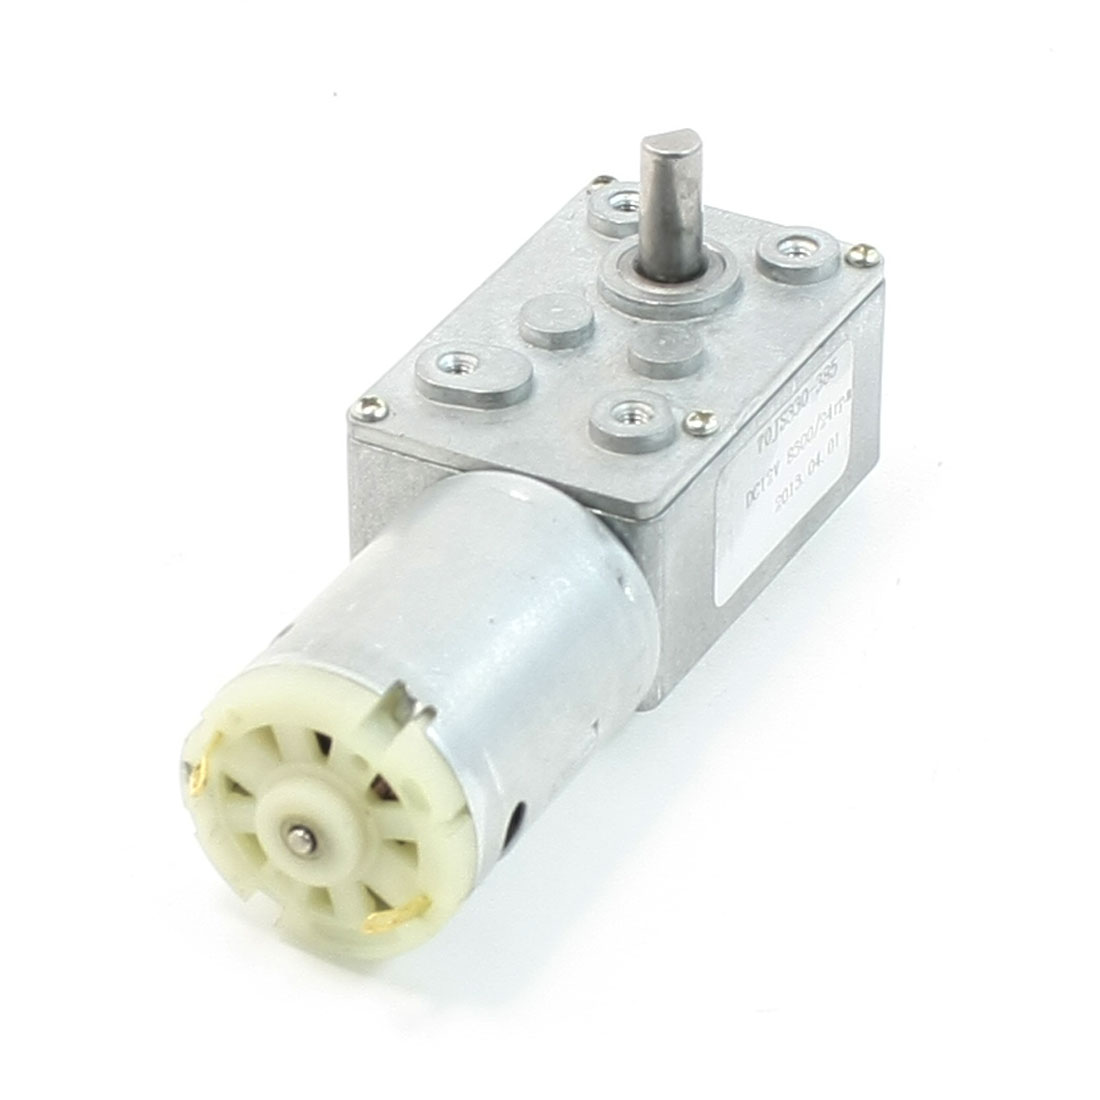 Unique Bargains Rectangle Shaped Gear Box 2 Terminal Electric Geared Motor DC 12V 8300/24RPM at Sears.com